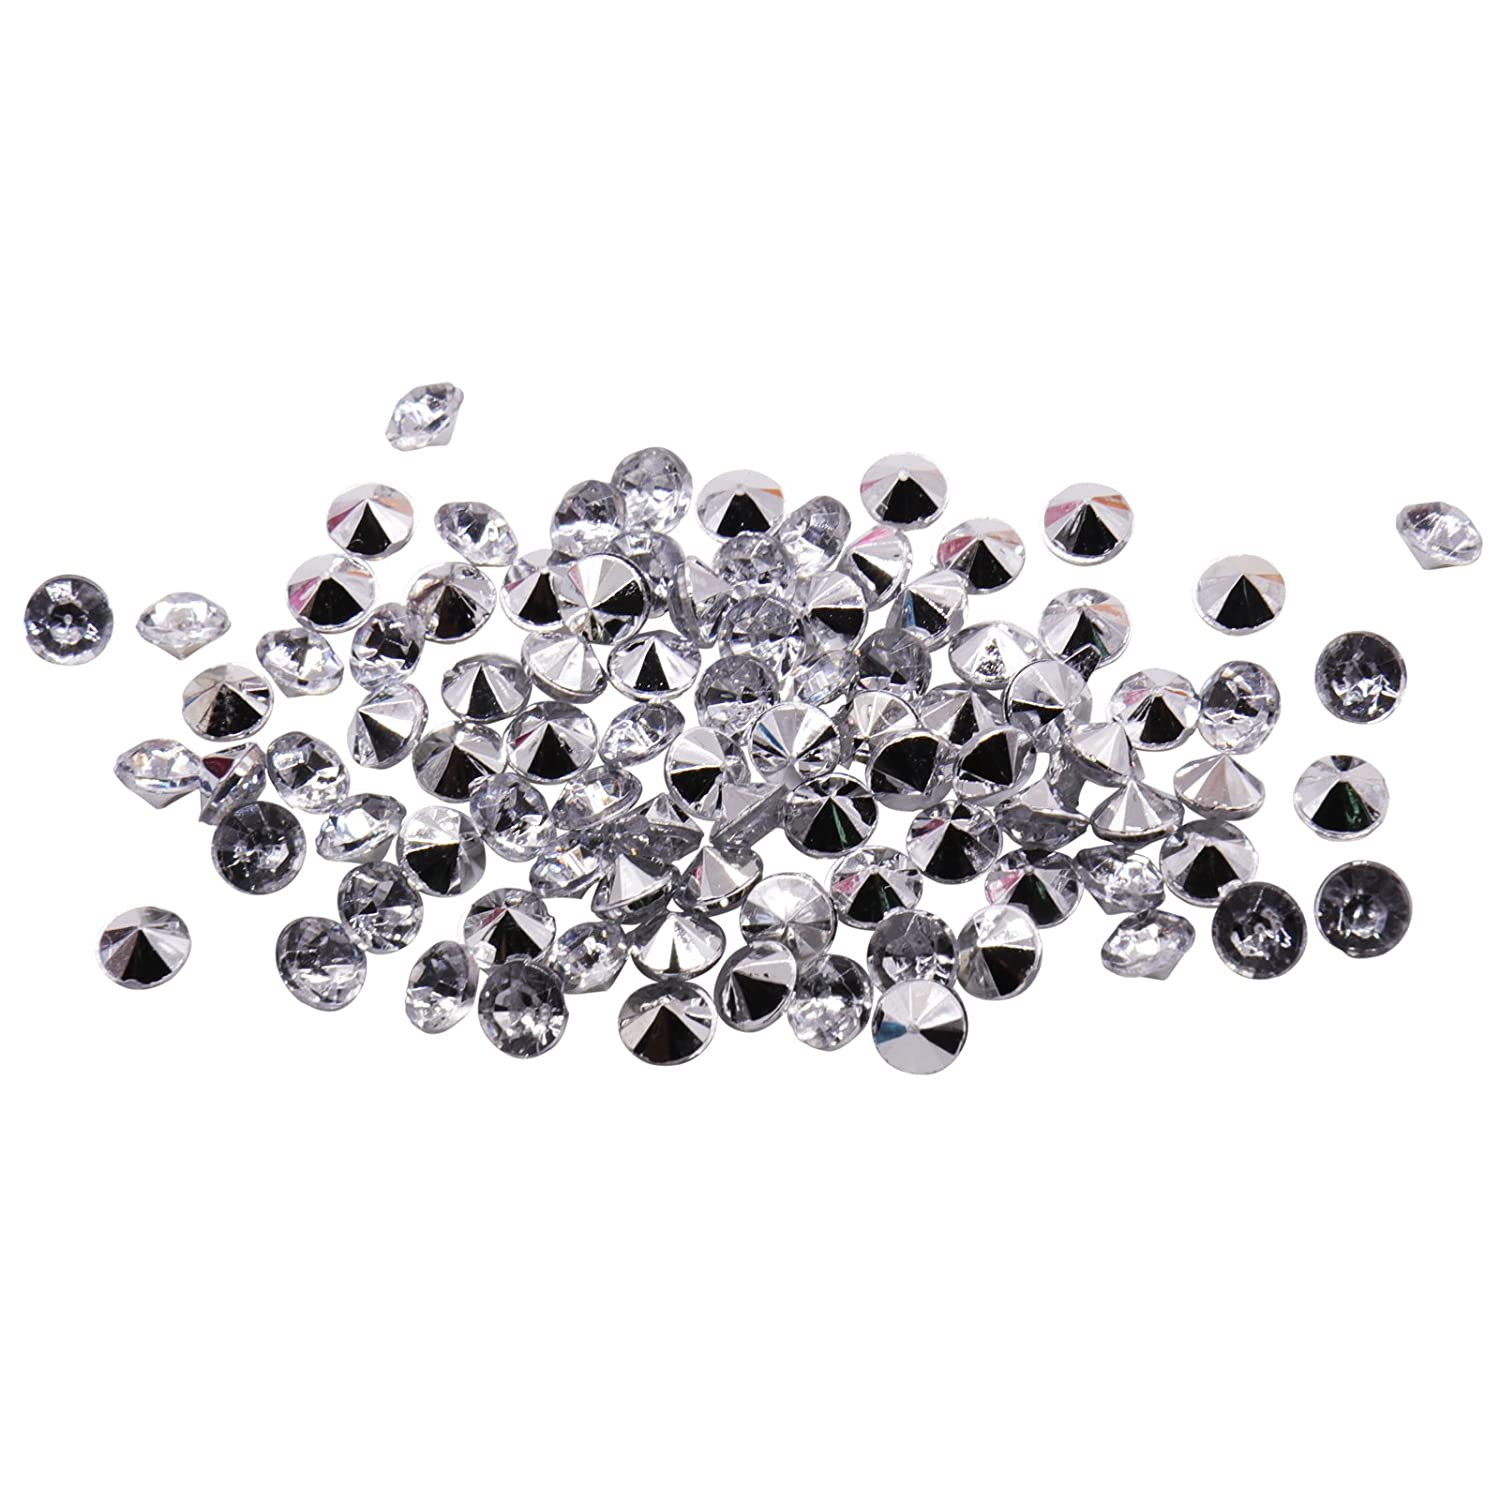 Crafts DIY Project Party Decoration Photography Wedding Black BIT.FLY 4.2mm 10000pcs Acrylic Crystal Diamond for Vase Fillers Party Table Scatter